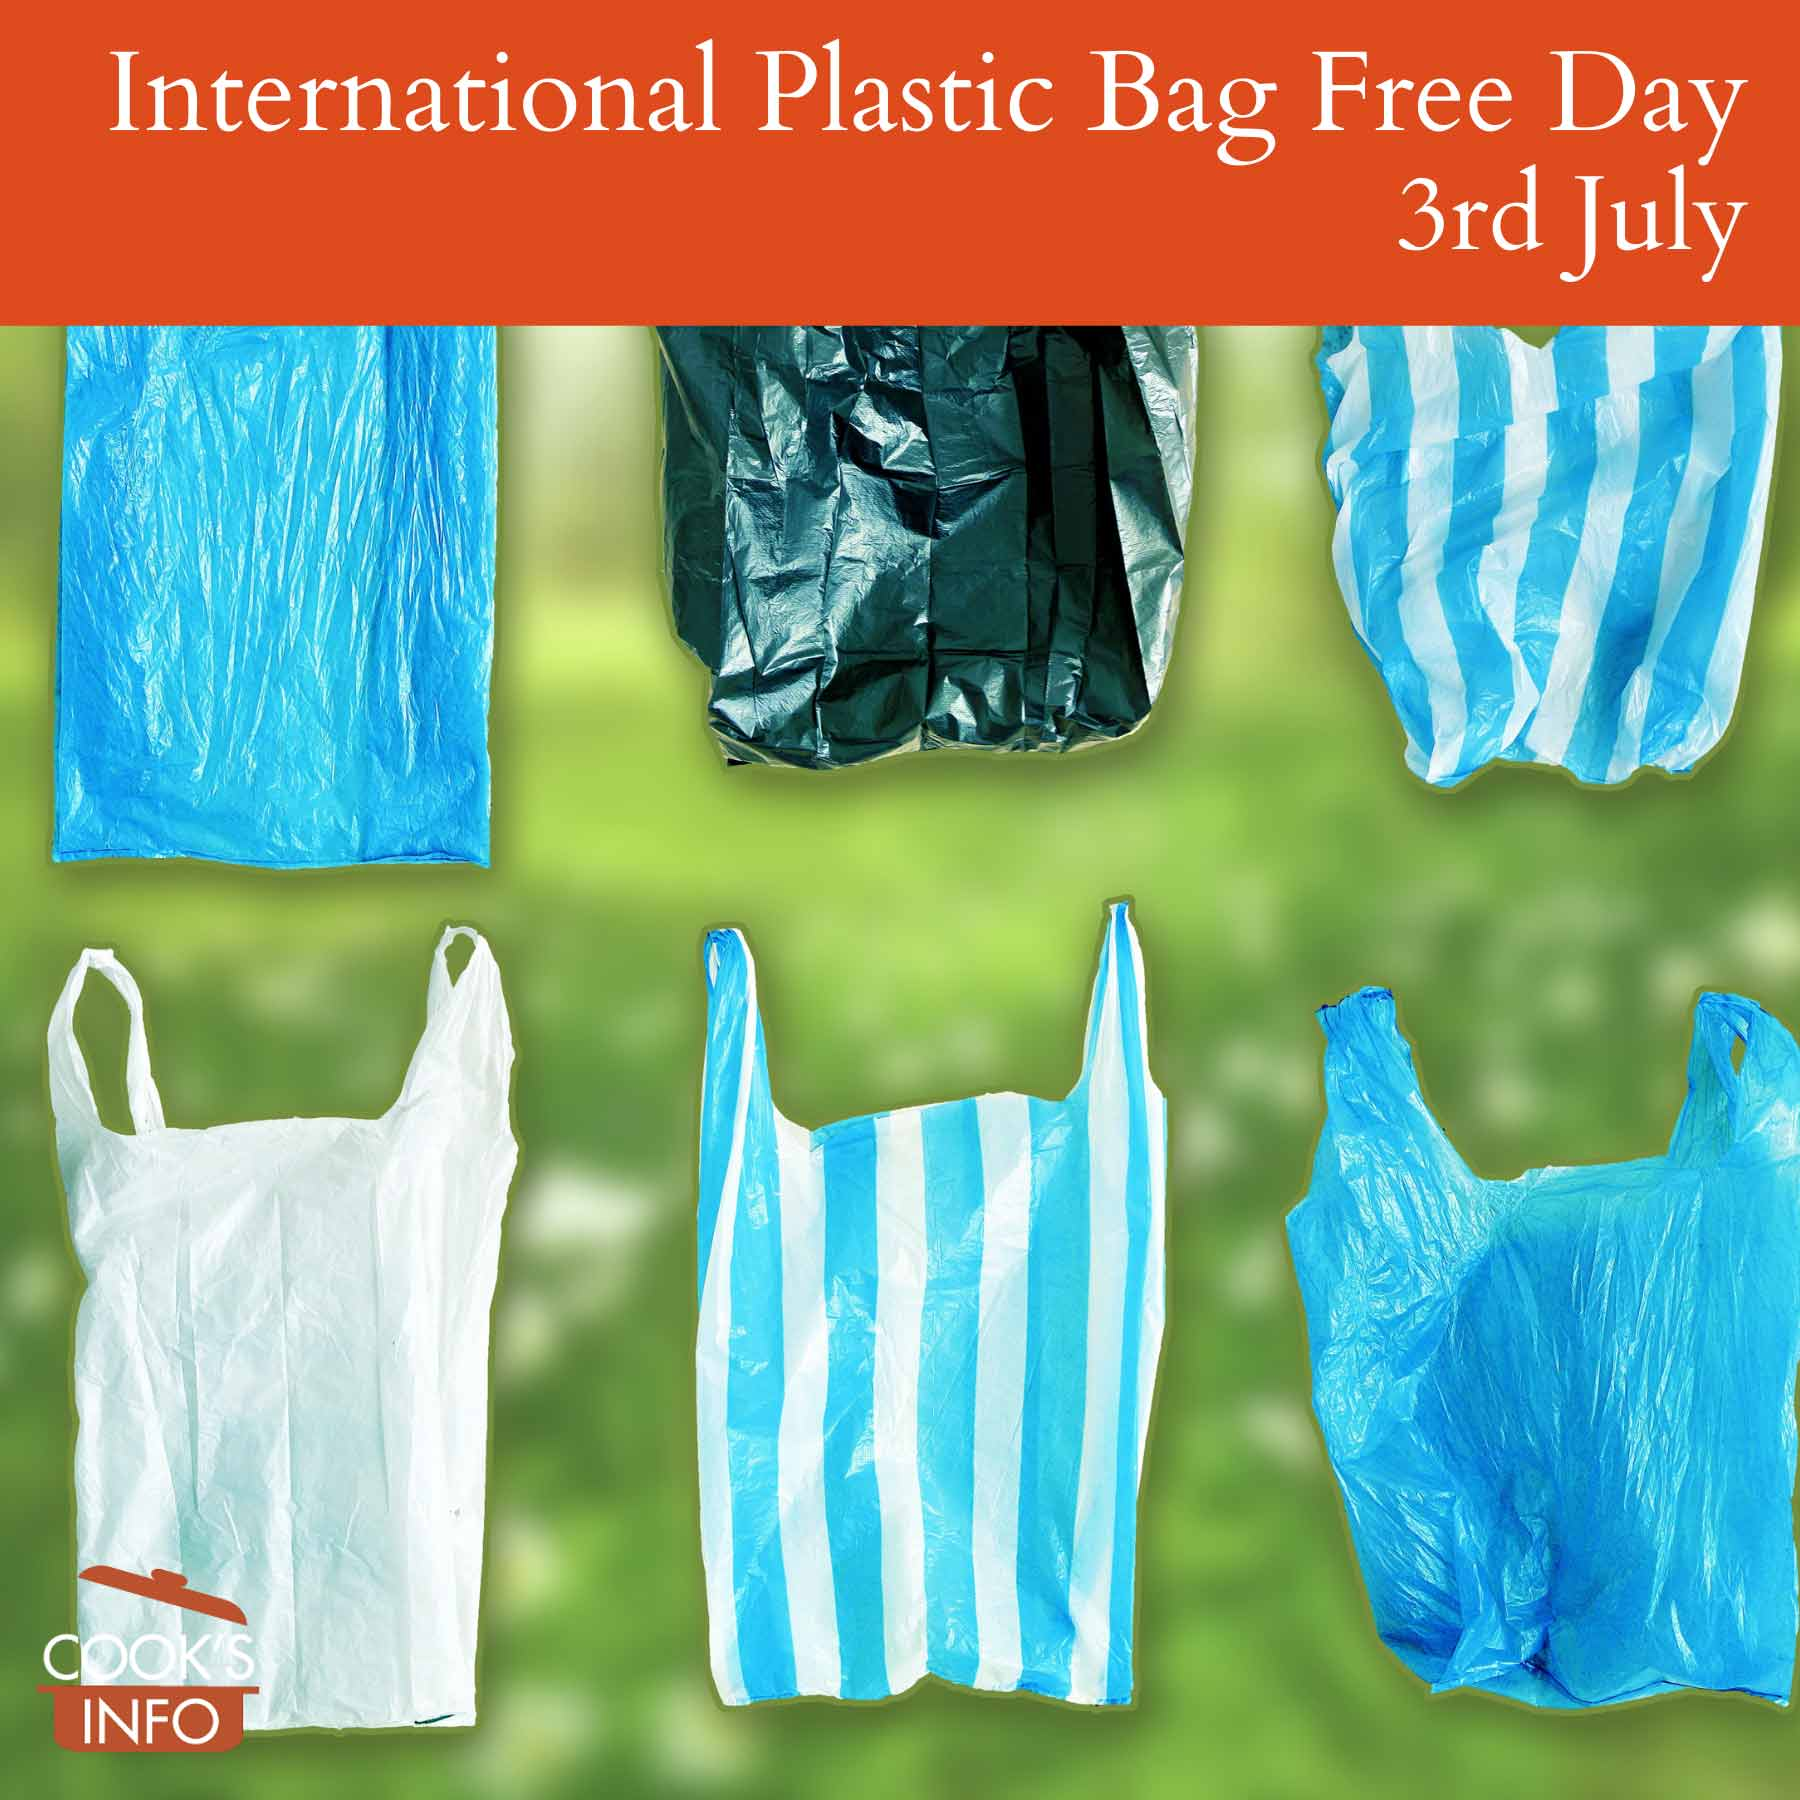 Single-use plastic carrier bags